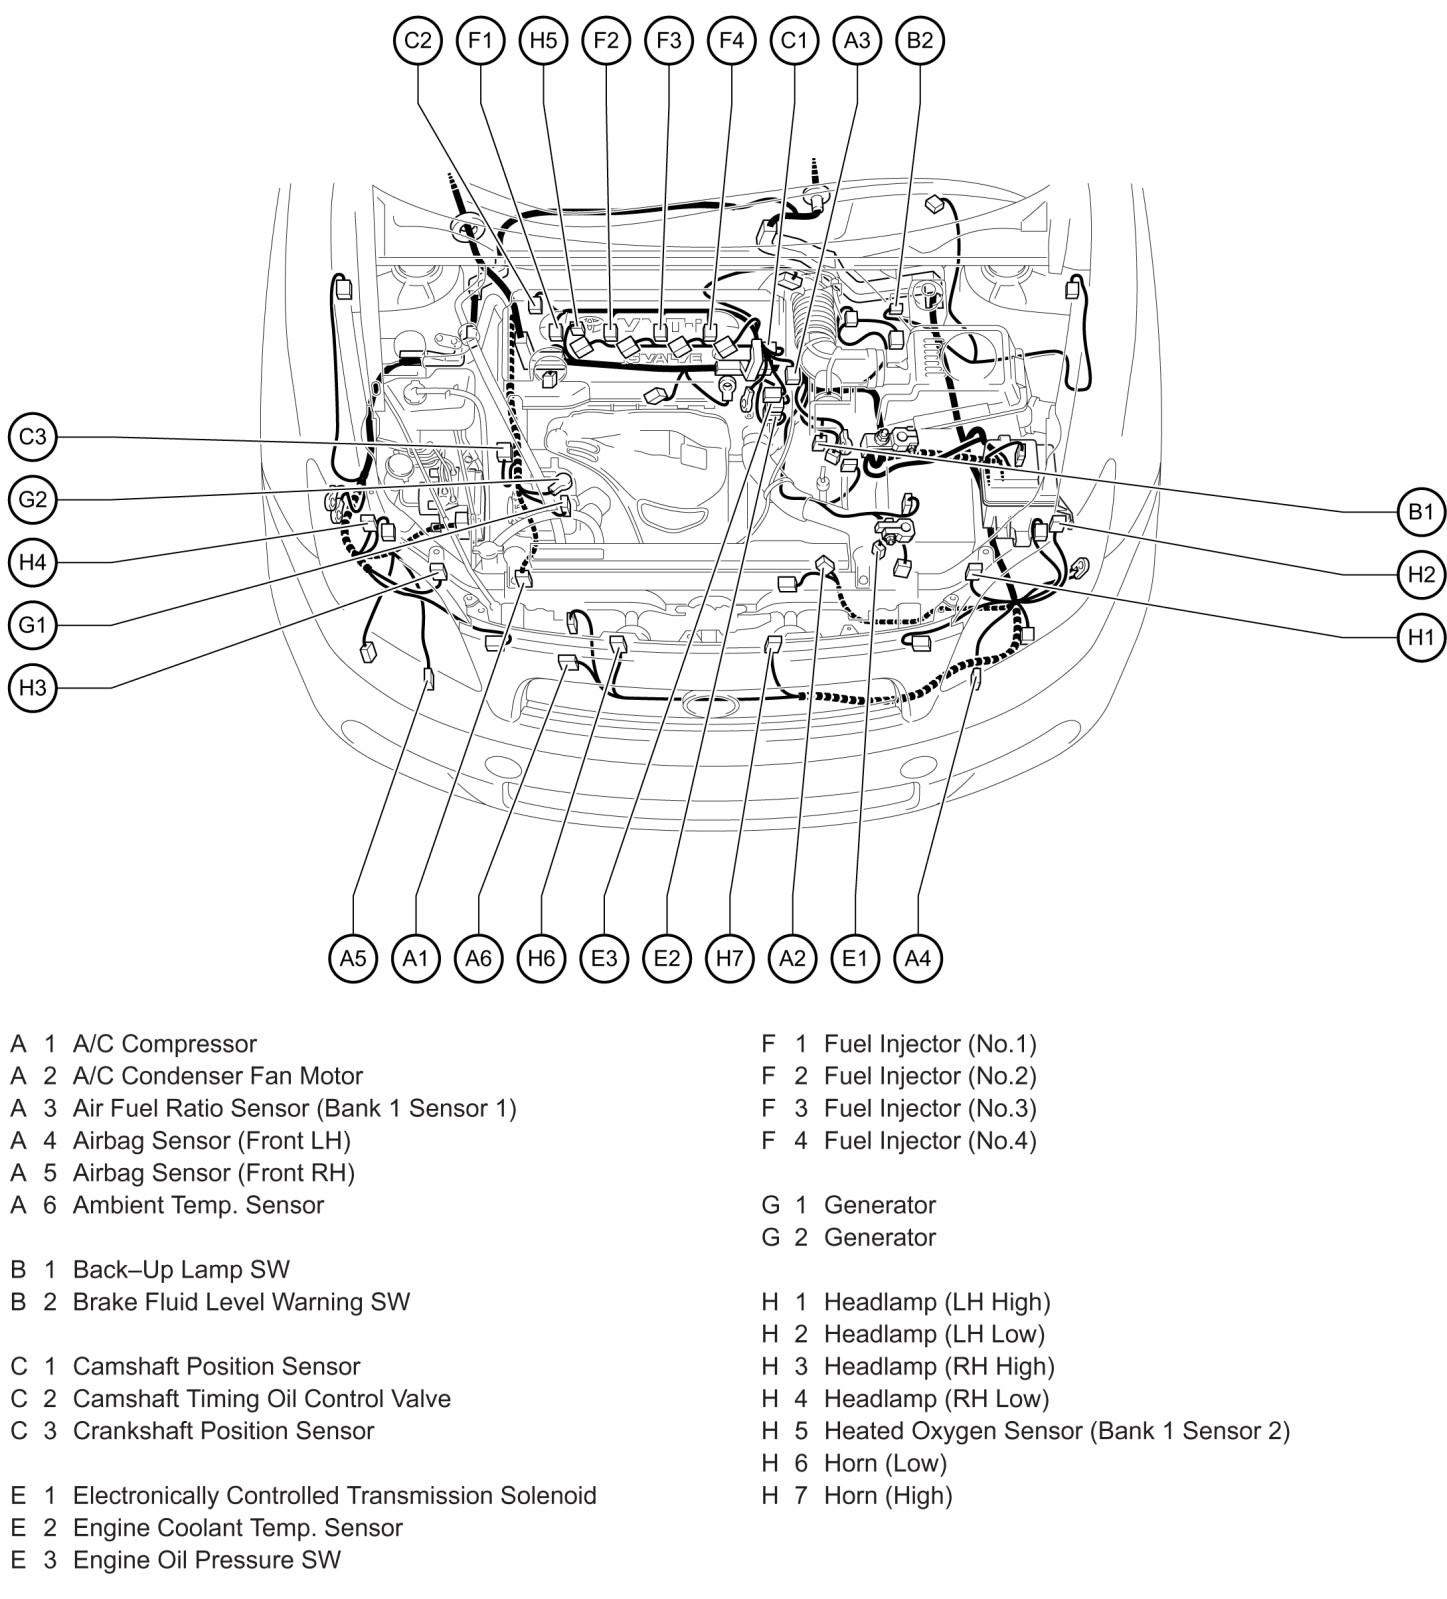 2006 Scion Tc Parts Diagram My Wiring Diagram